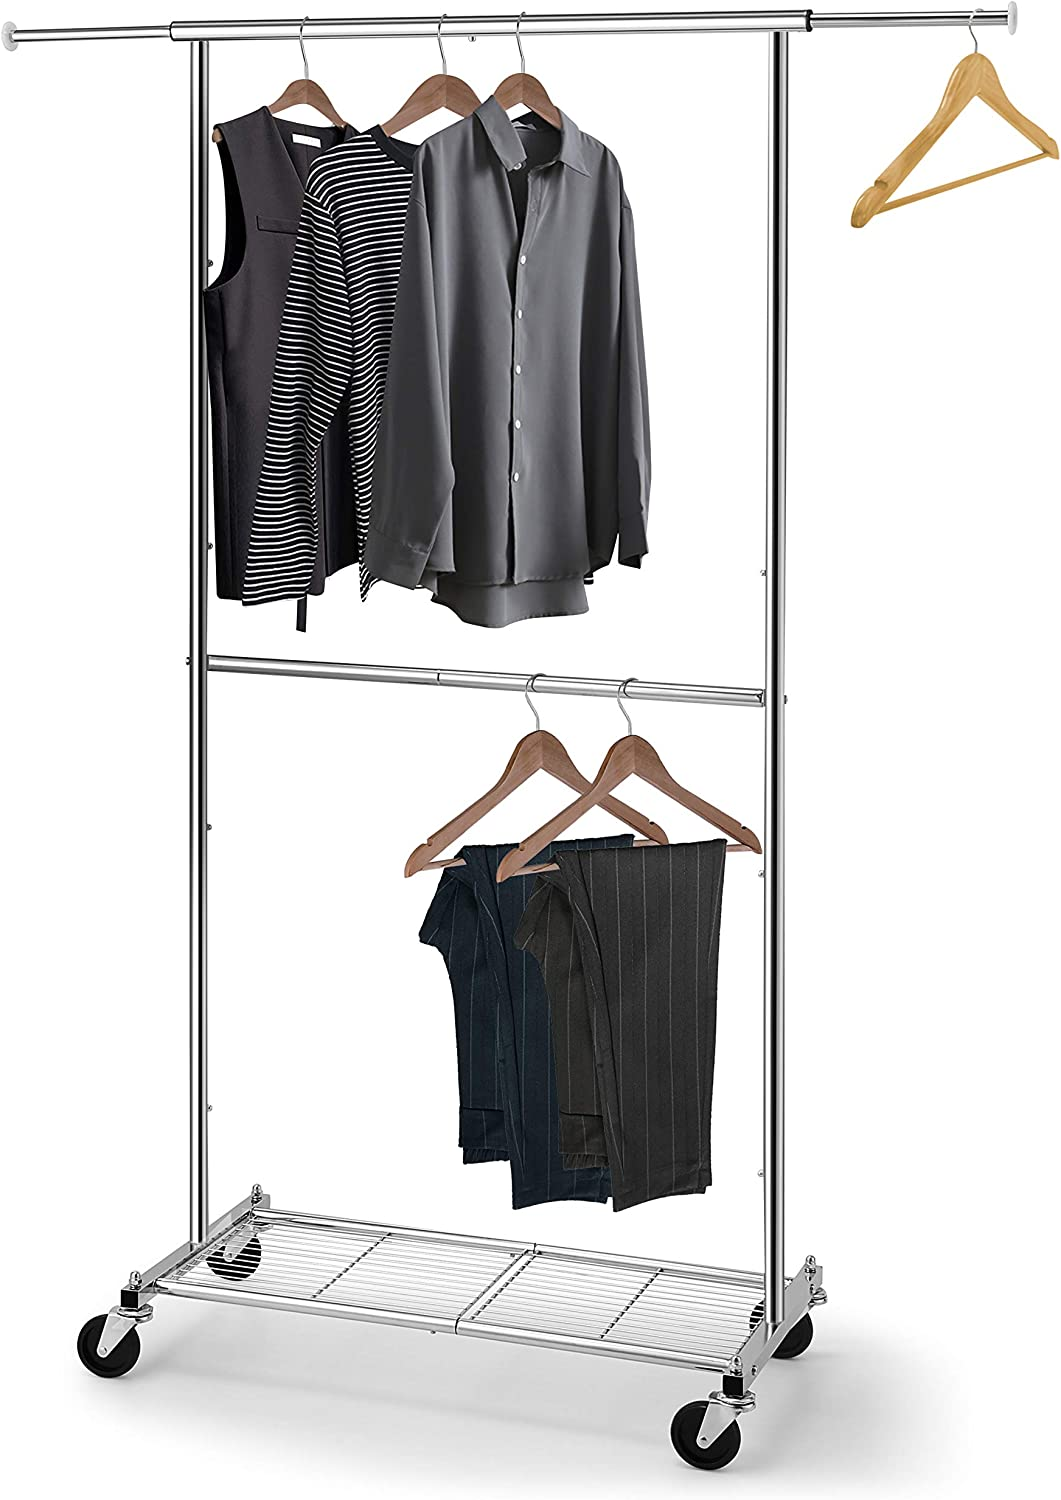 Simple Trending Standard Clothing Garment Rack, Rolling Clothes Organizer with Wheels and Bottom Shelves, Extendable, Chrome